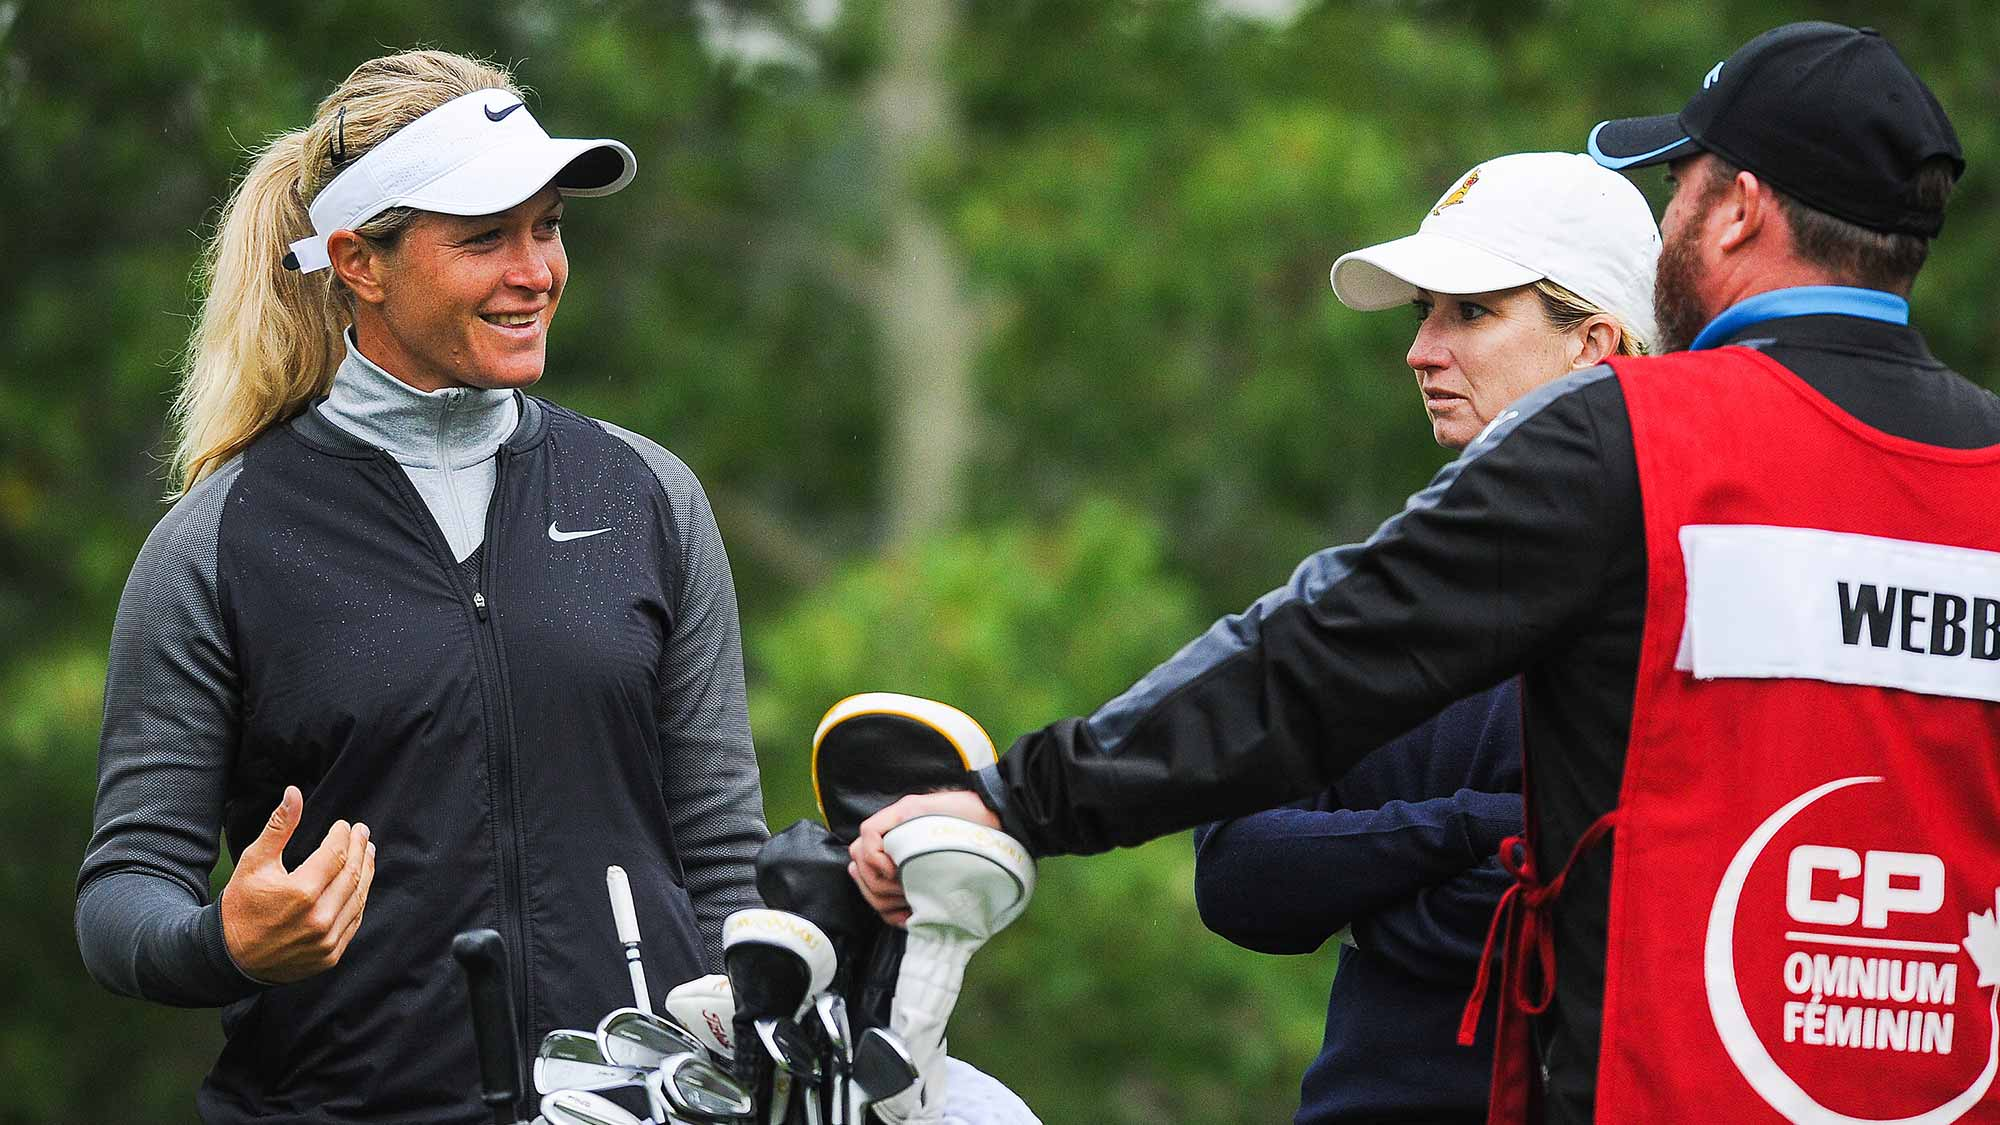 Suzann Pettersen of Norway talks with Karrie Webb of Australia prior to teeing off on the 11th hole during the first round of the Canadian Pacific Women's Open at Priddis Greens Golf and Country Club